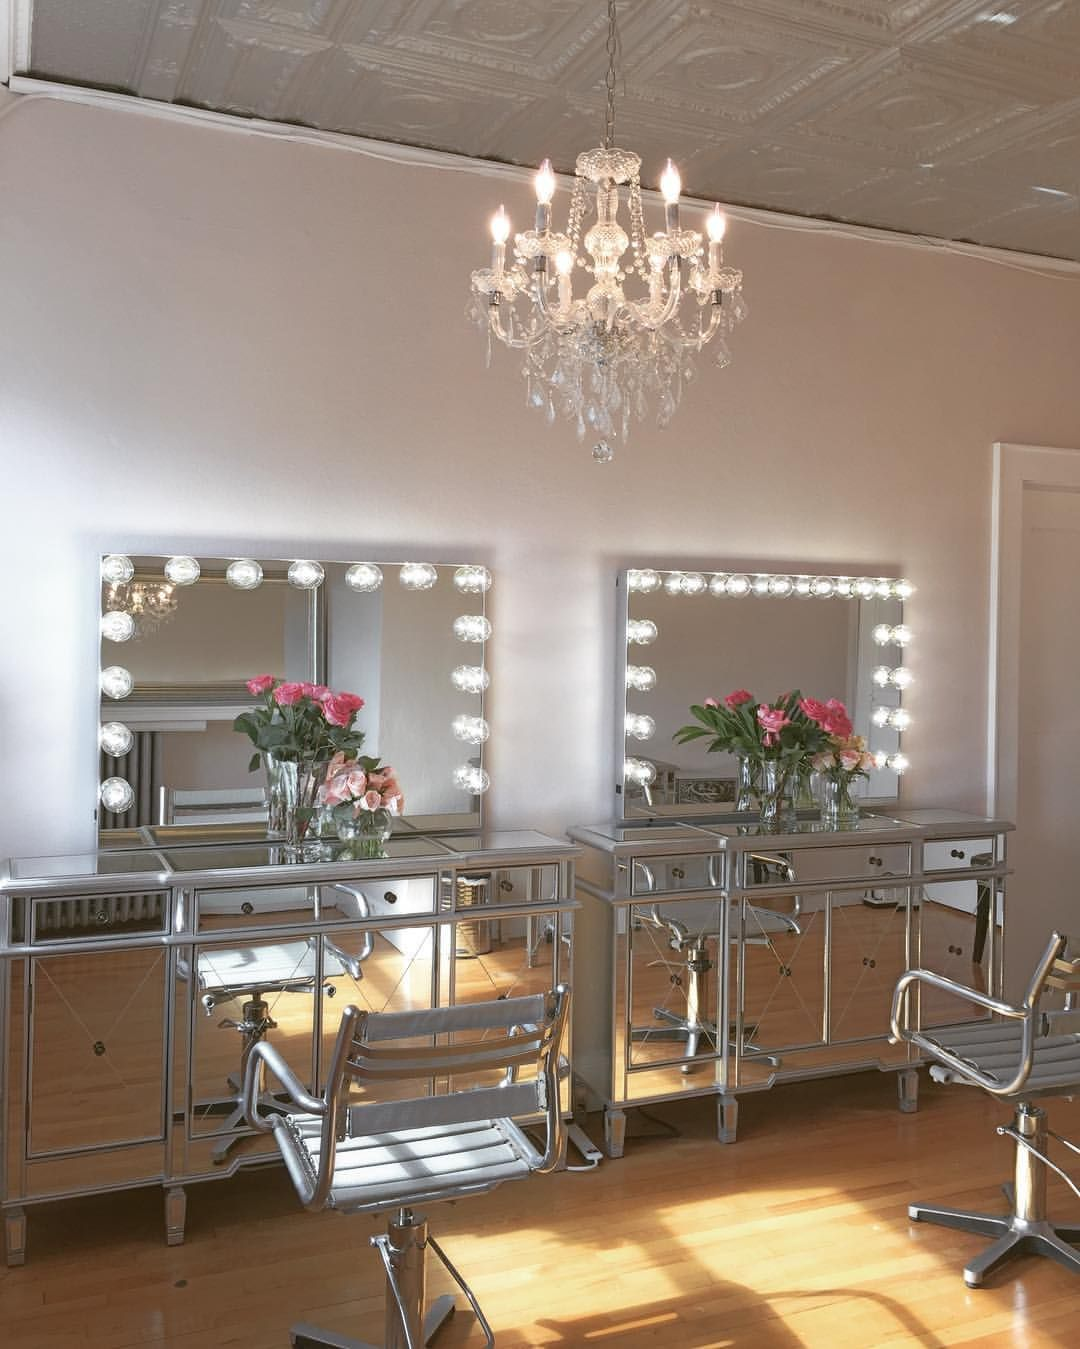 Salon Maquillage The House Of Makeup Studio The House Of Makeup Hair Makeup